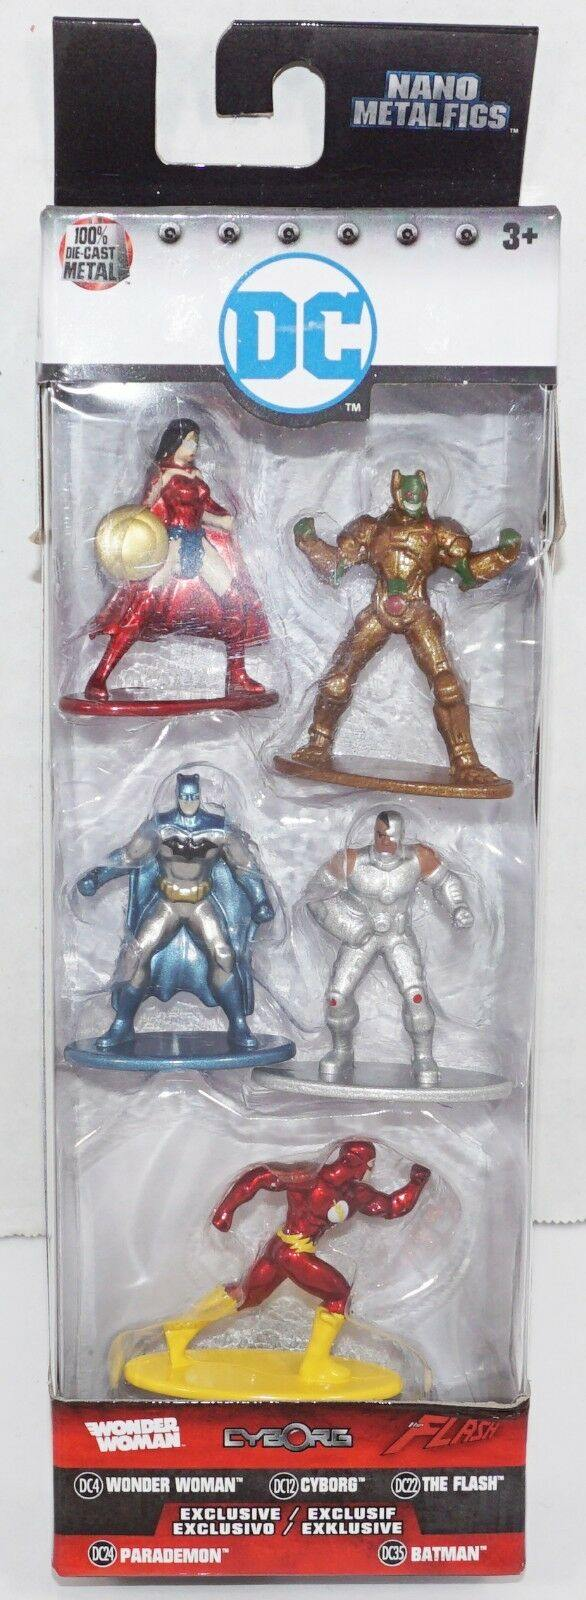 "DC COMICS 5 FIGURE PACK #A - NANO METALFIGS 1.65"" MINI DIECAST TOY FIGURINE 2017 - EZ Monster Deals"